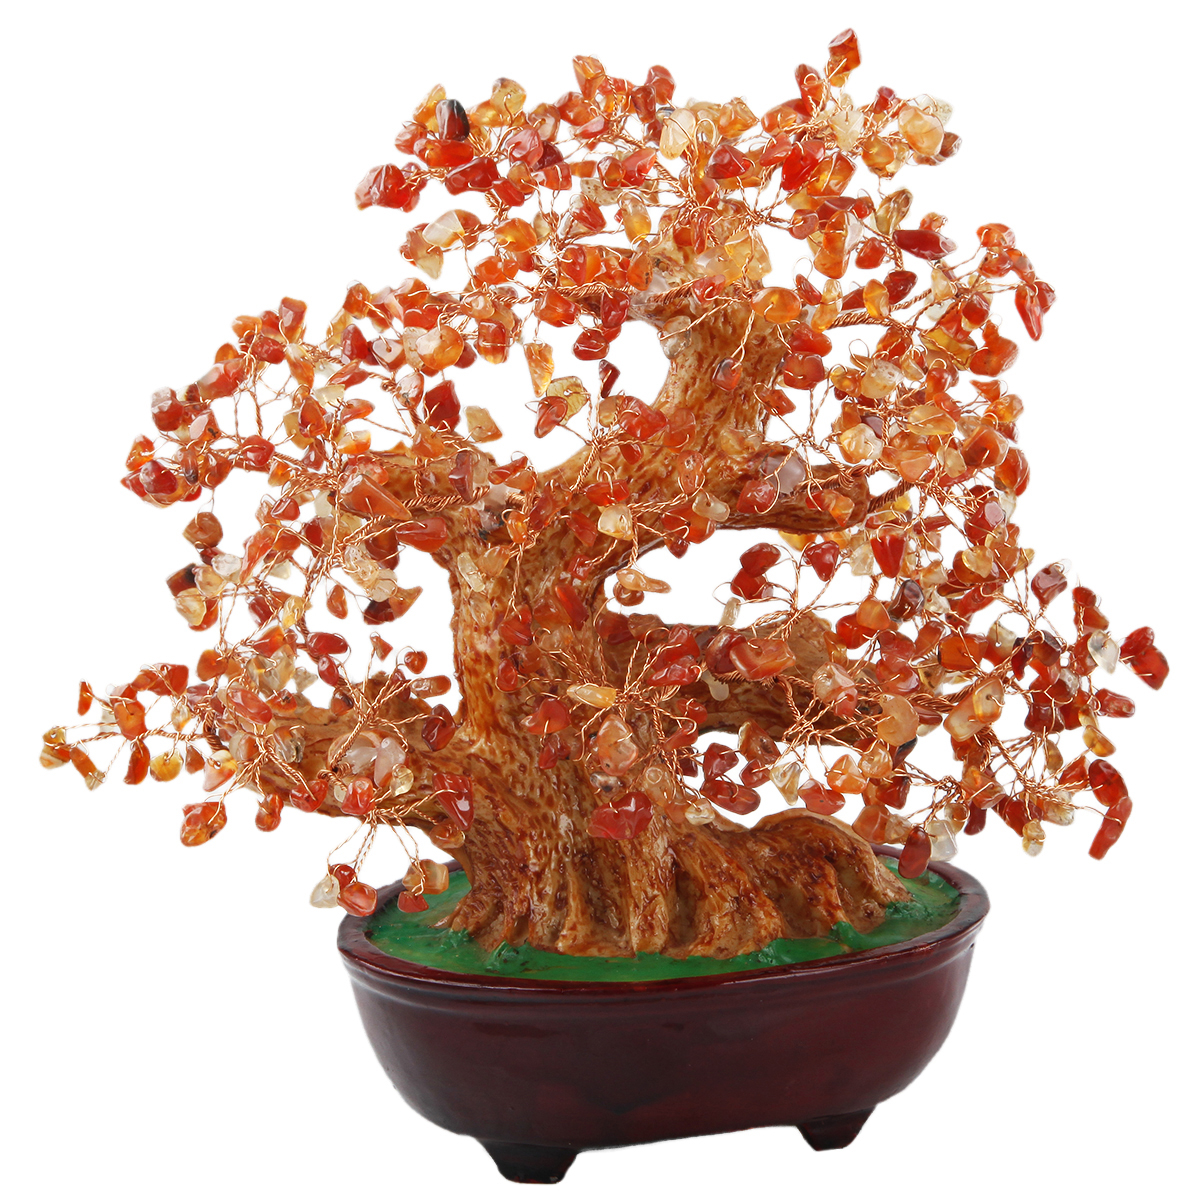 TUMBEELLUWA Natural Citrine Amethyst Carnelian Money Tree Bonsai Tumbled Crystal Wealth Lucky Fengshui Healing Decoration 8 Inch